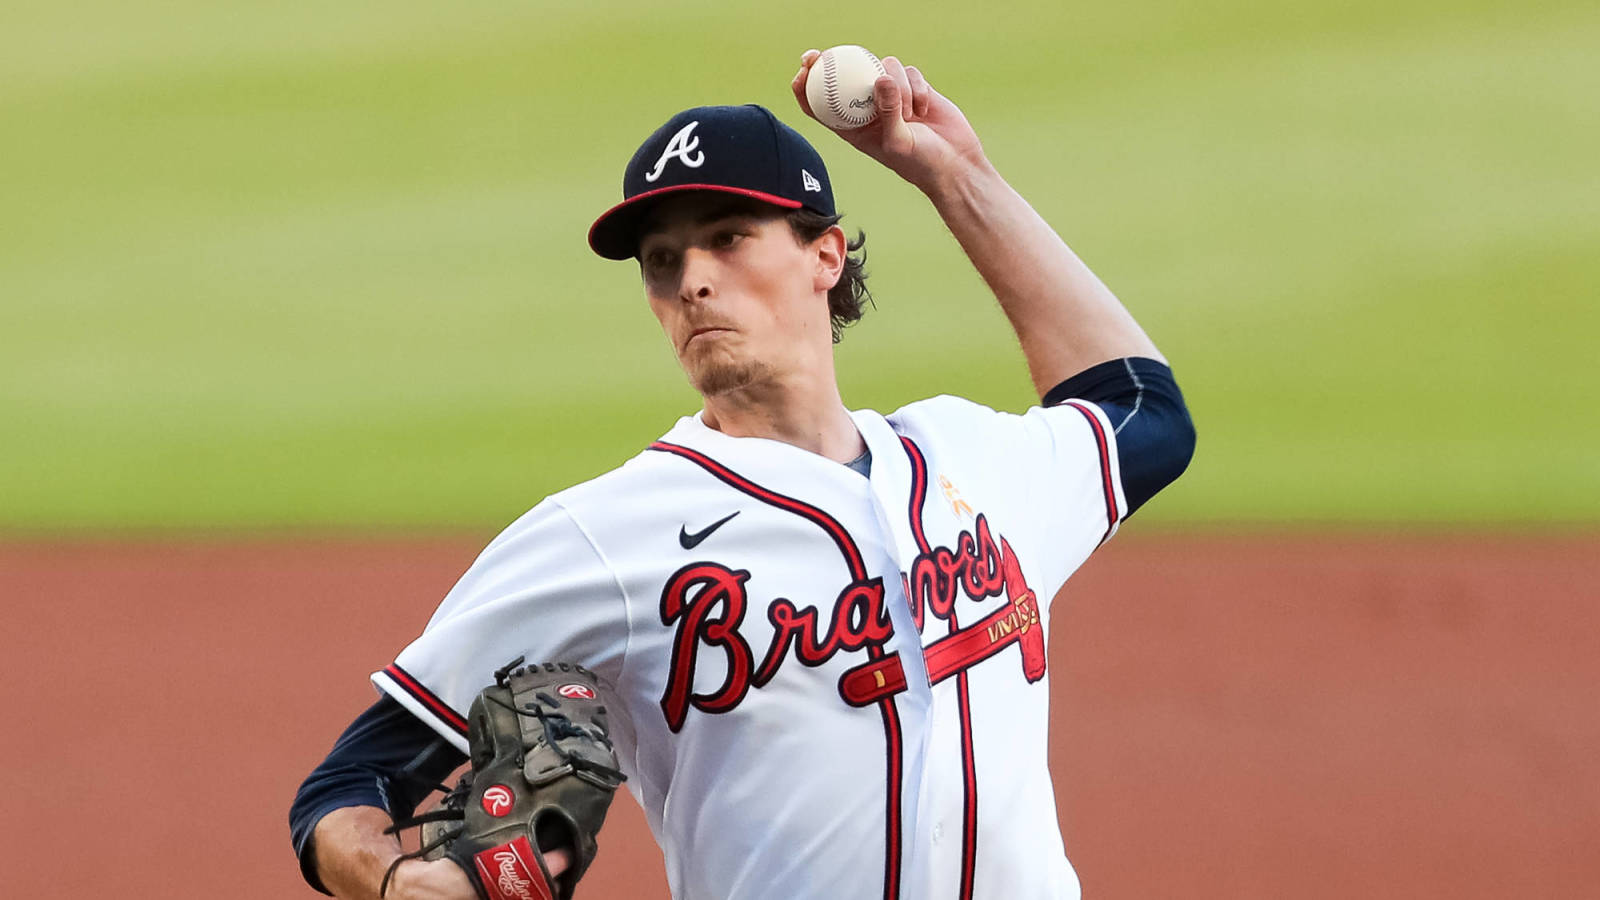 Braves Place Max Fried On Il Dfa Charlie Culberson In Series Of Roster Moves Yardbarker